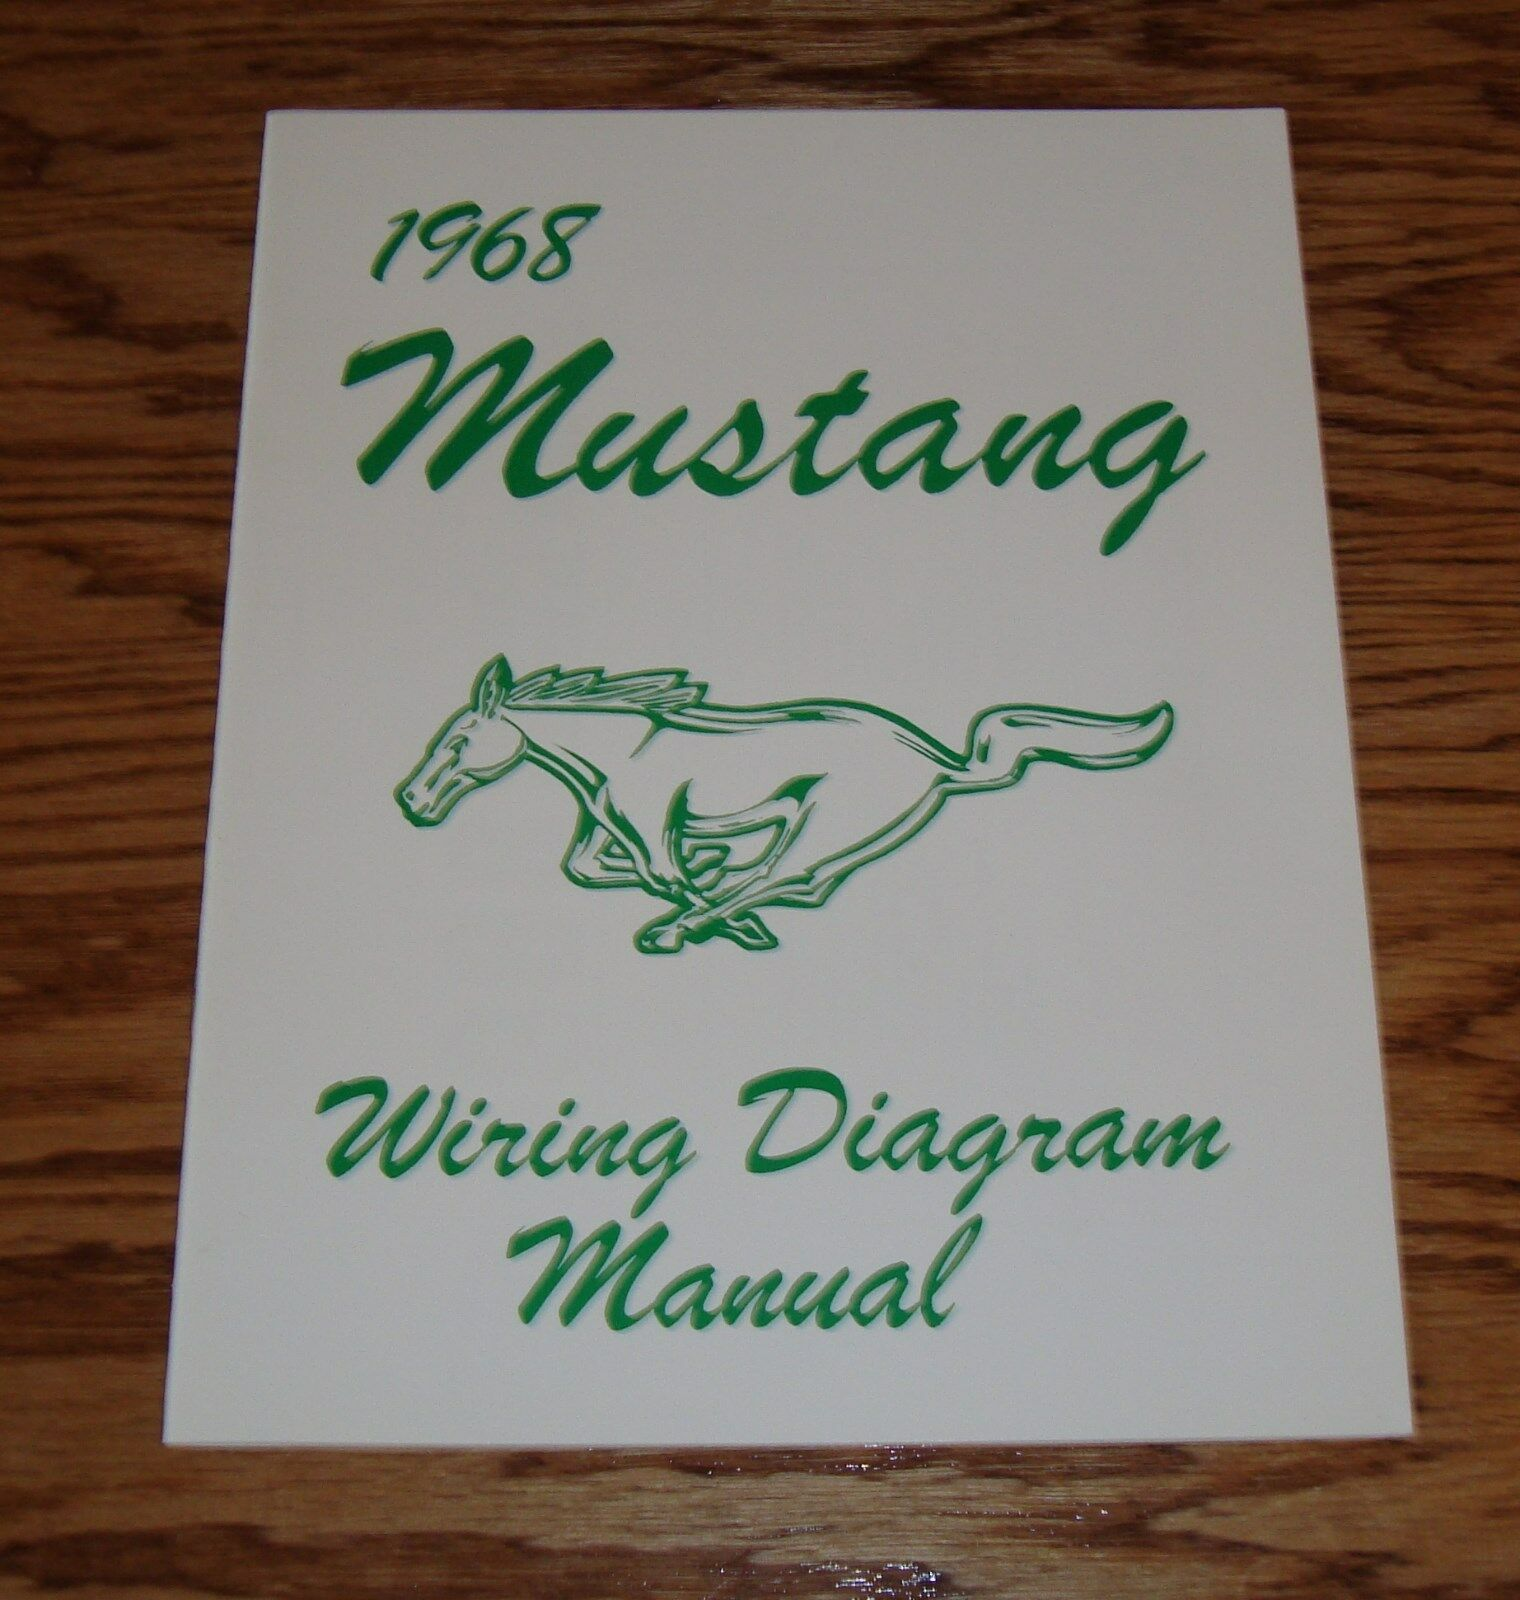 1967 Ford Mustang Shelby Wiring Diagram Manual Schematics 1975 Ii 1968 Brochure 68 9 00 Picclick 66 Engine